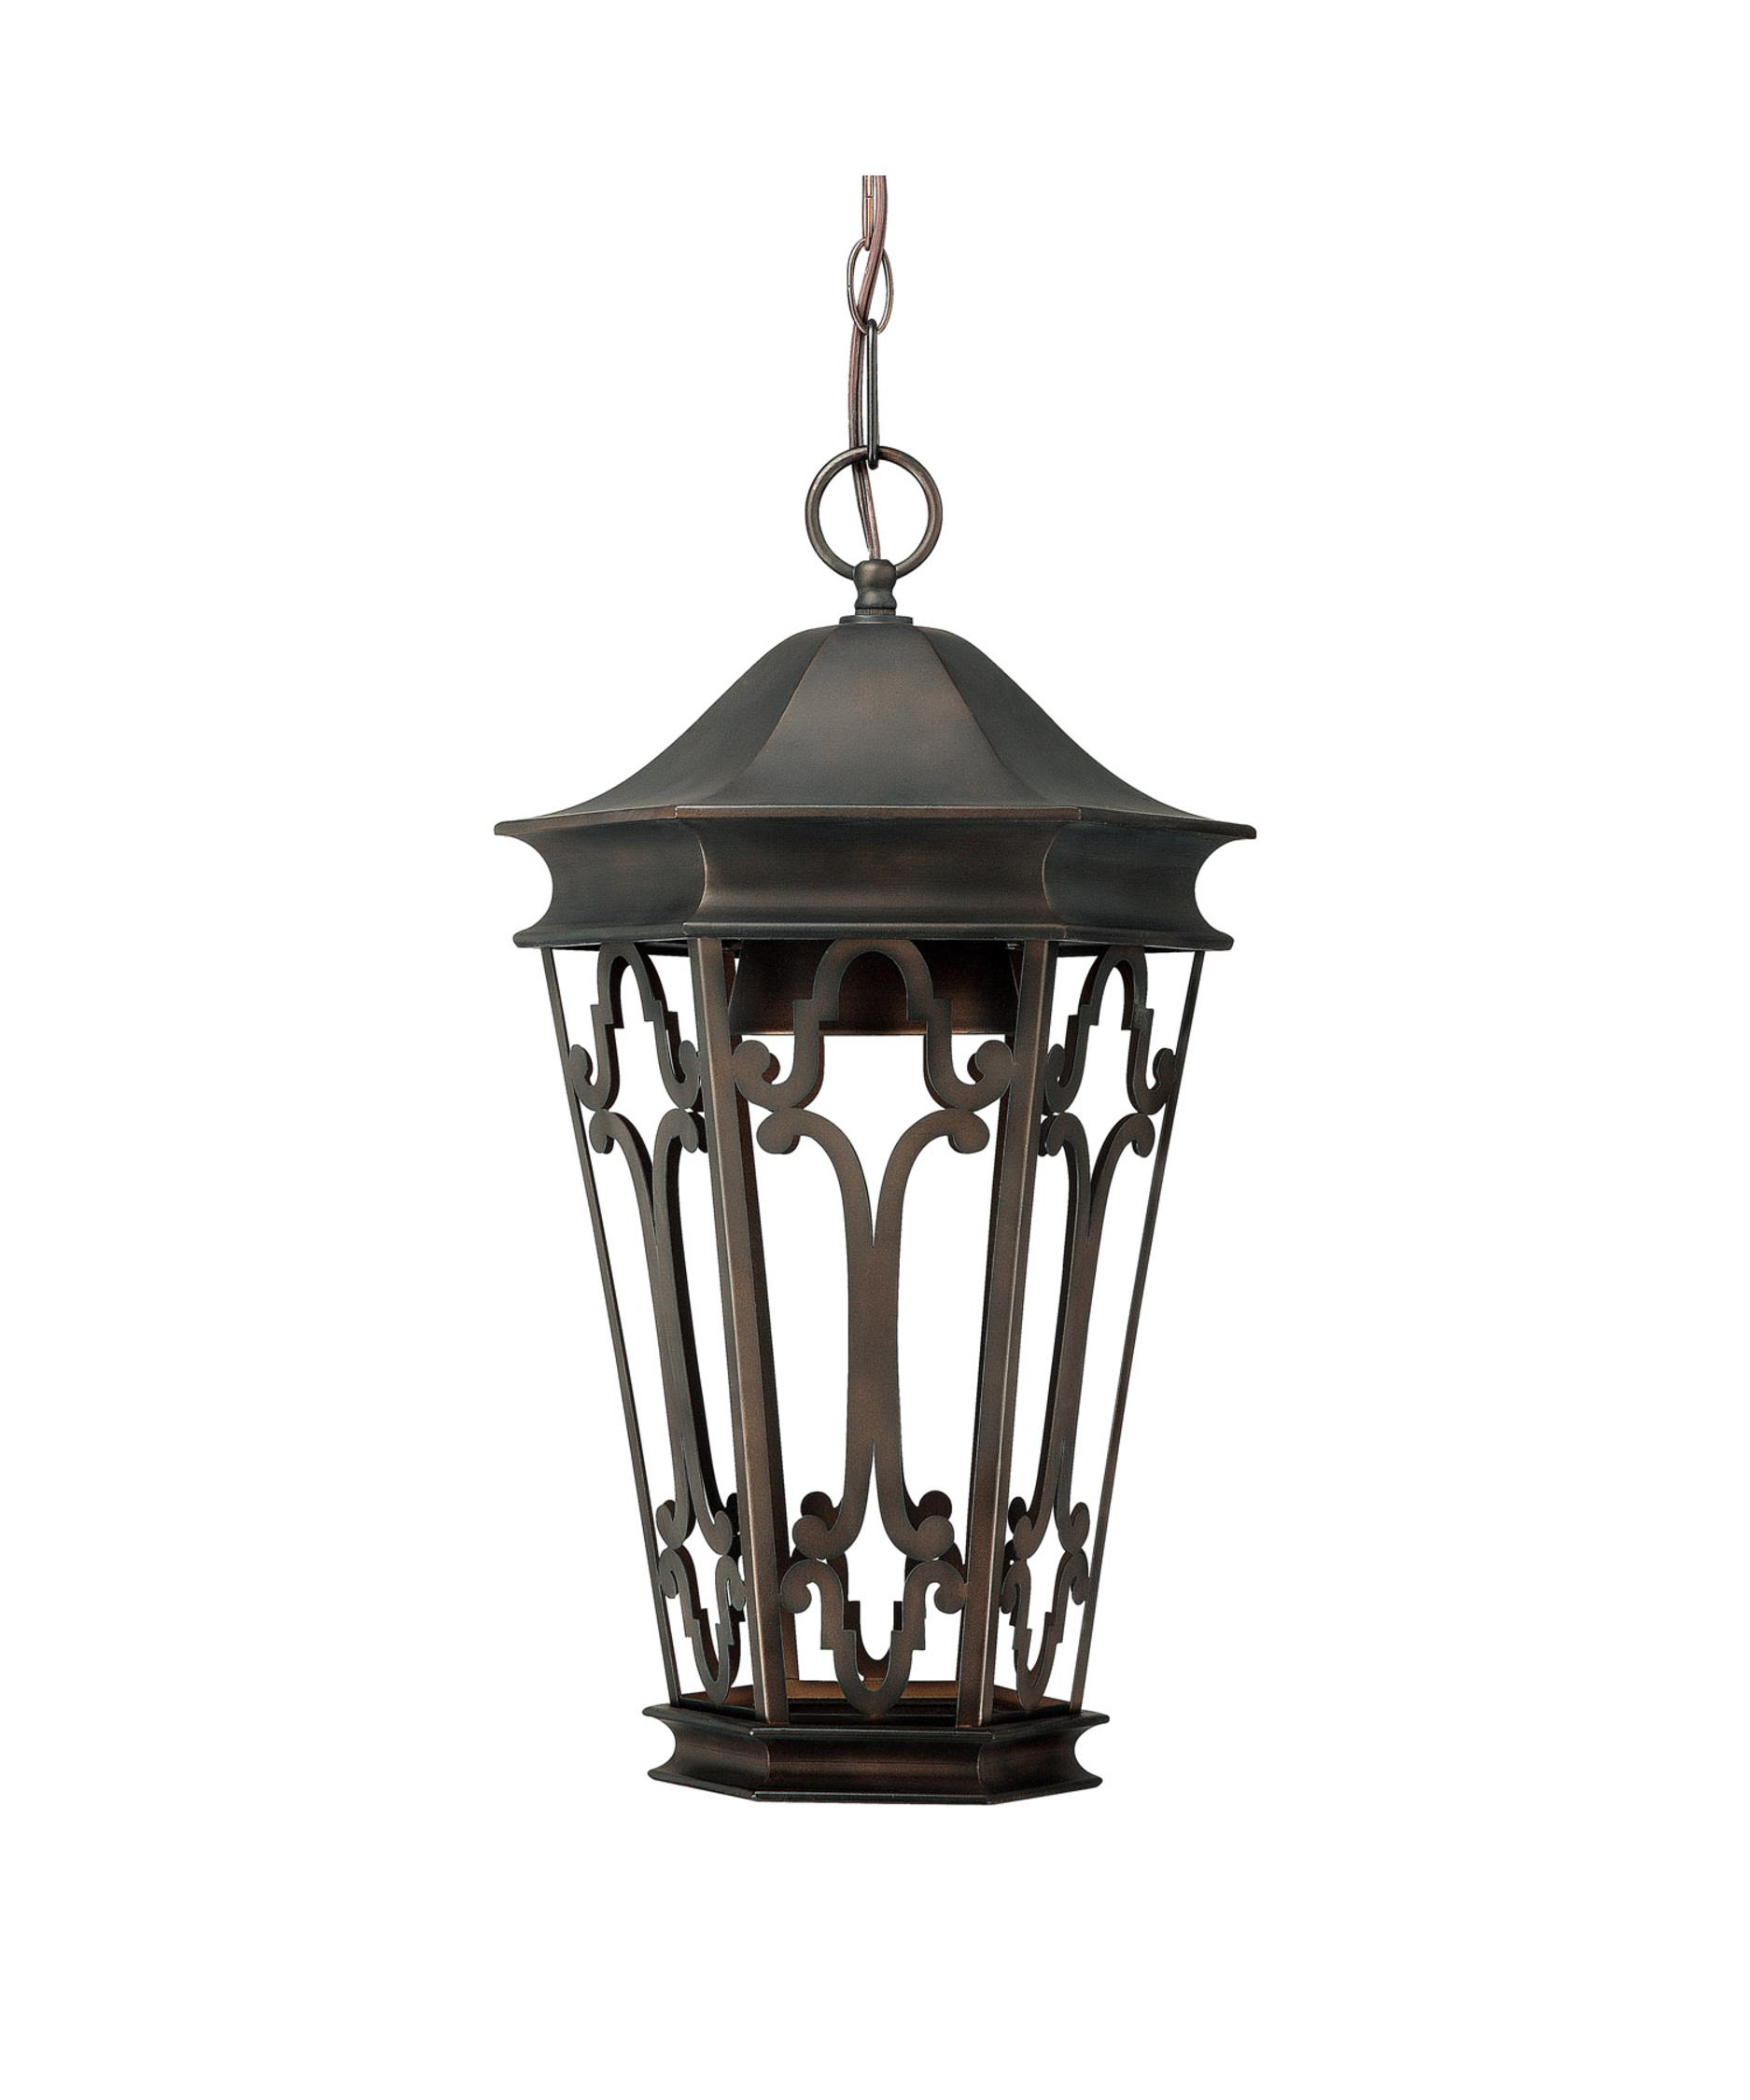 Outdoor hanging lamp - Shown In Old Bronze Finish